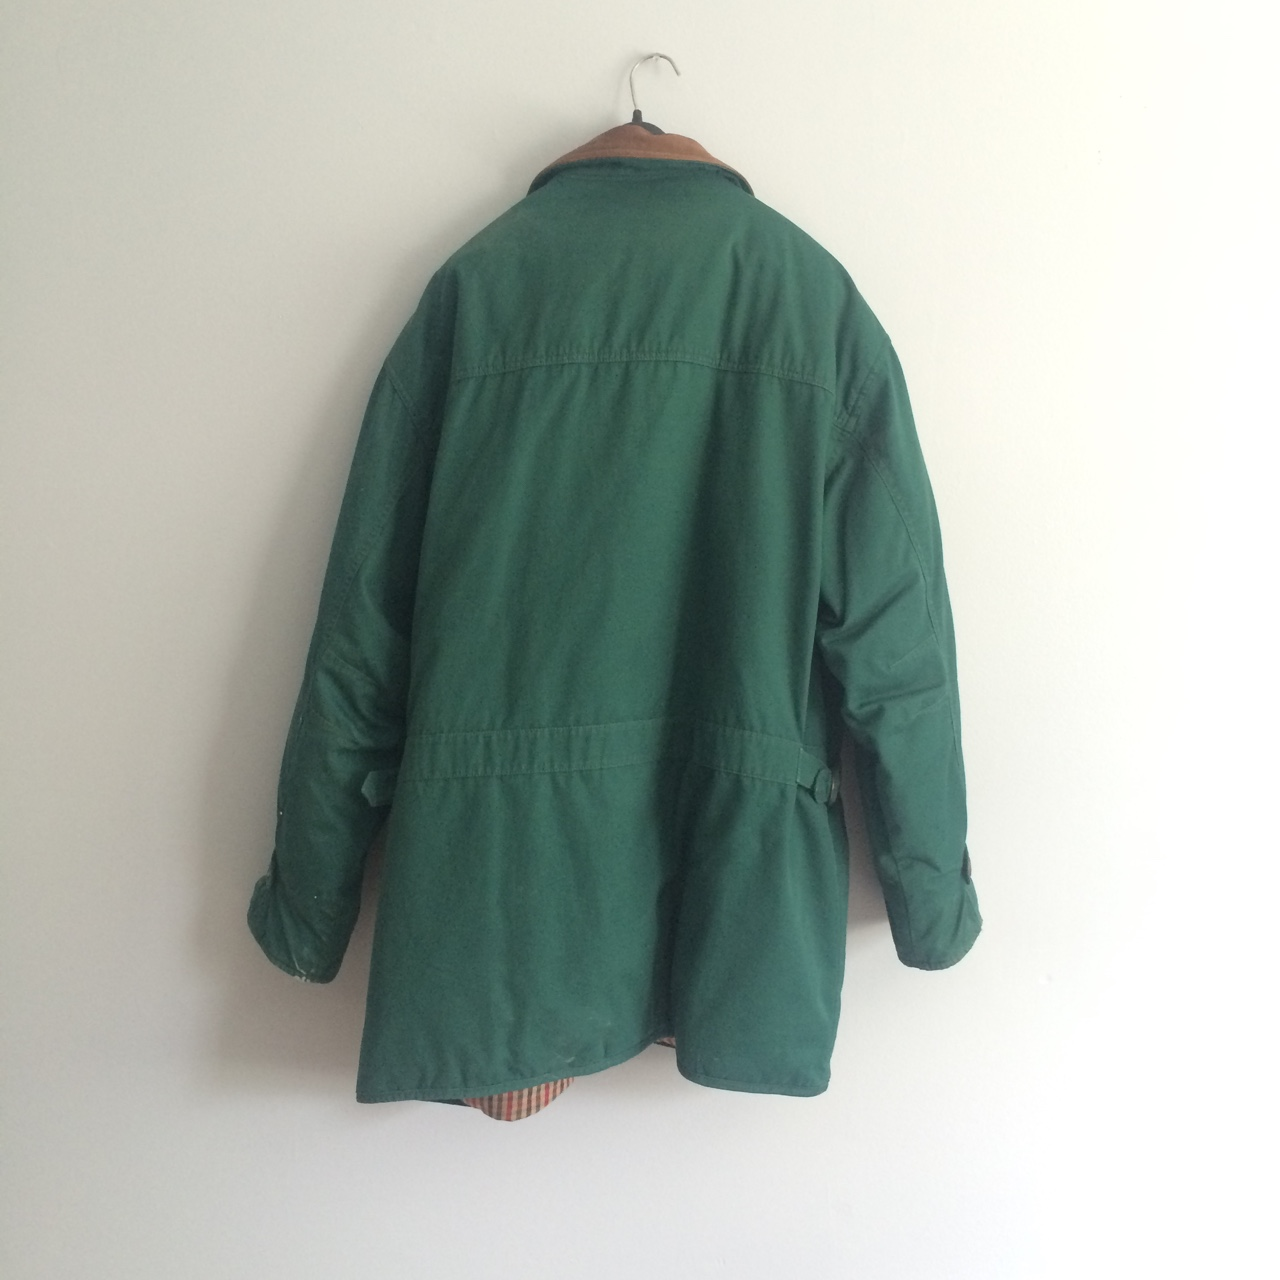 b8e8aa77e Vintage Eddie Bauer down jacket. This coat is... - Depop